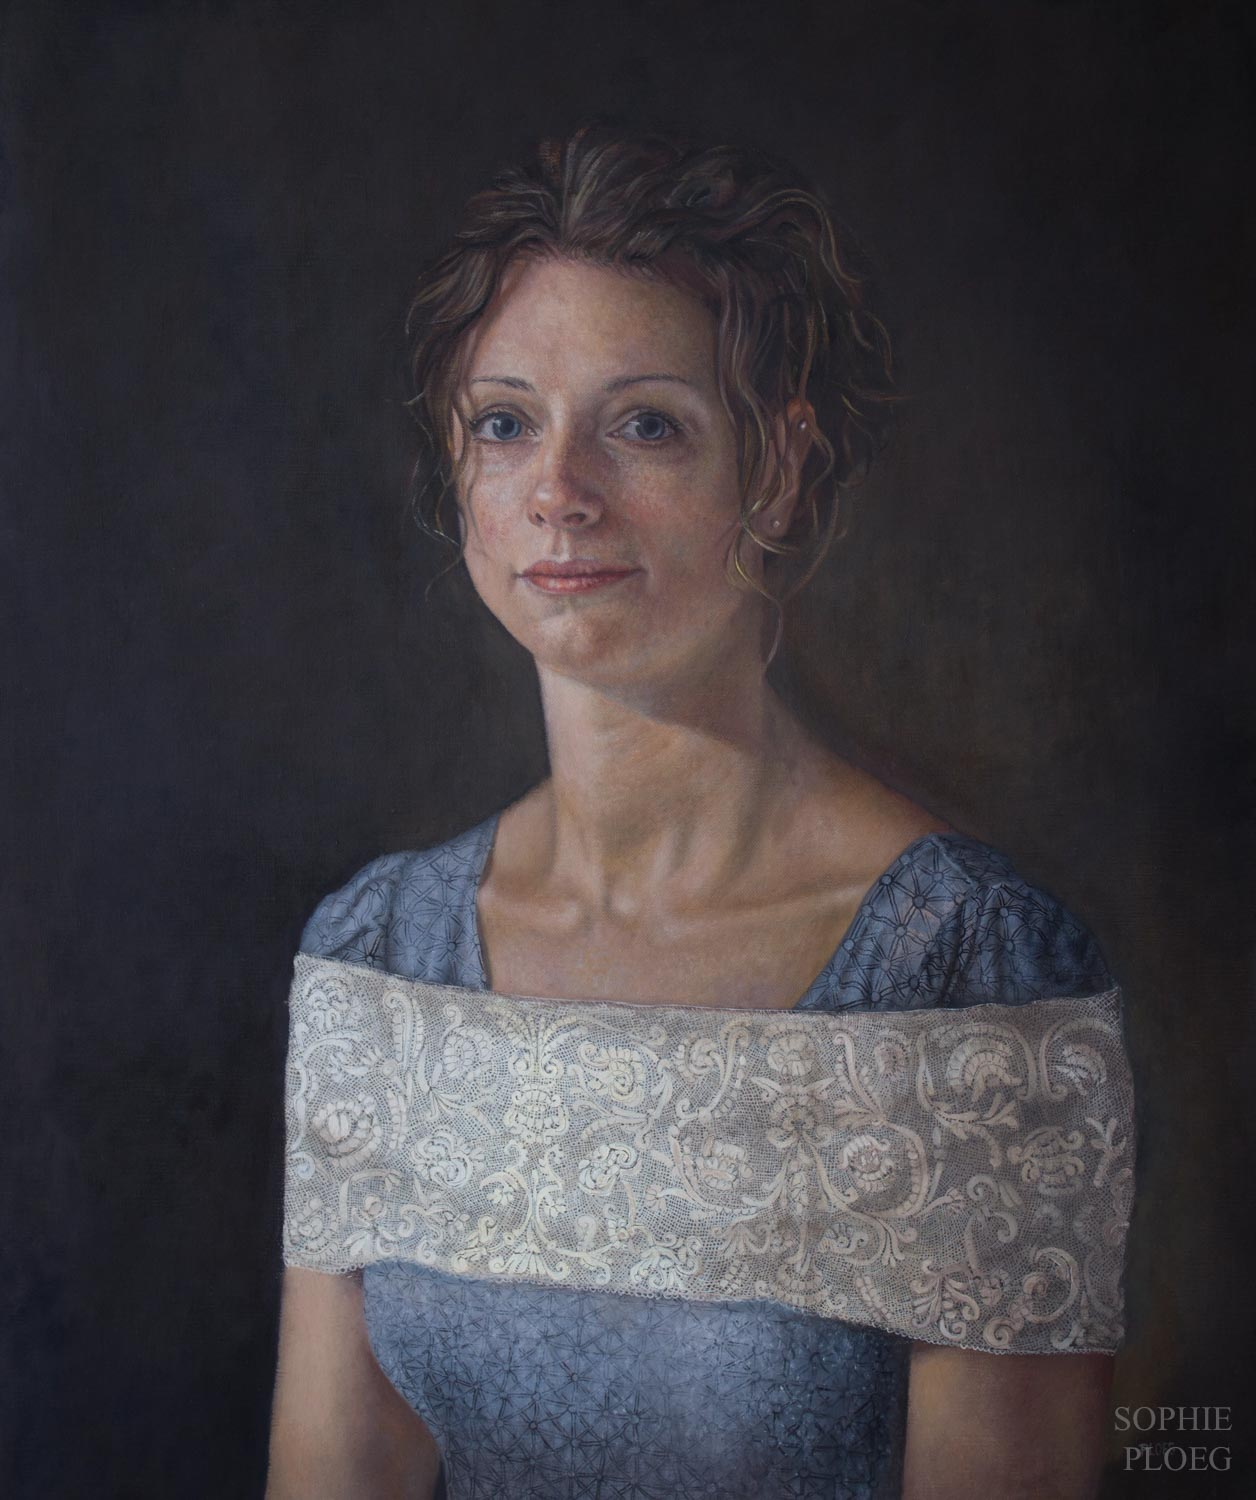 Sophie Ploeg, A Fine Thread, oil on linen